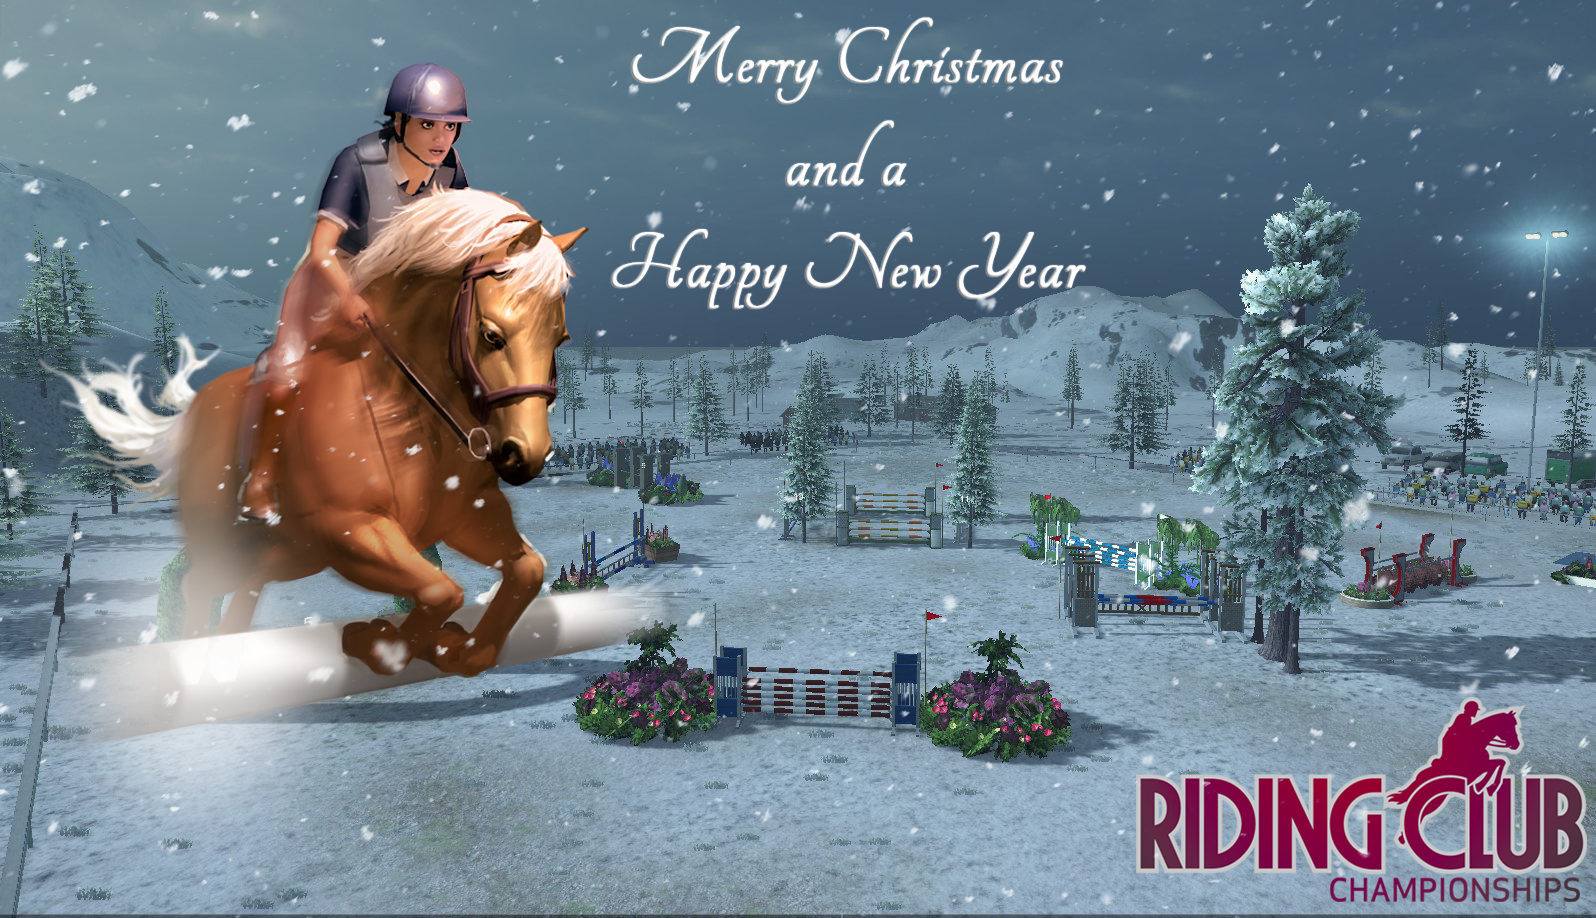 Steam Riding Club Championships Merry Christmas And A Happy New Year